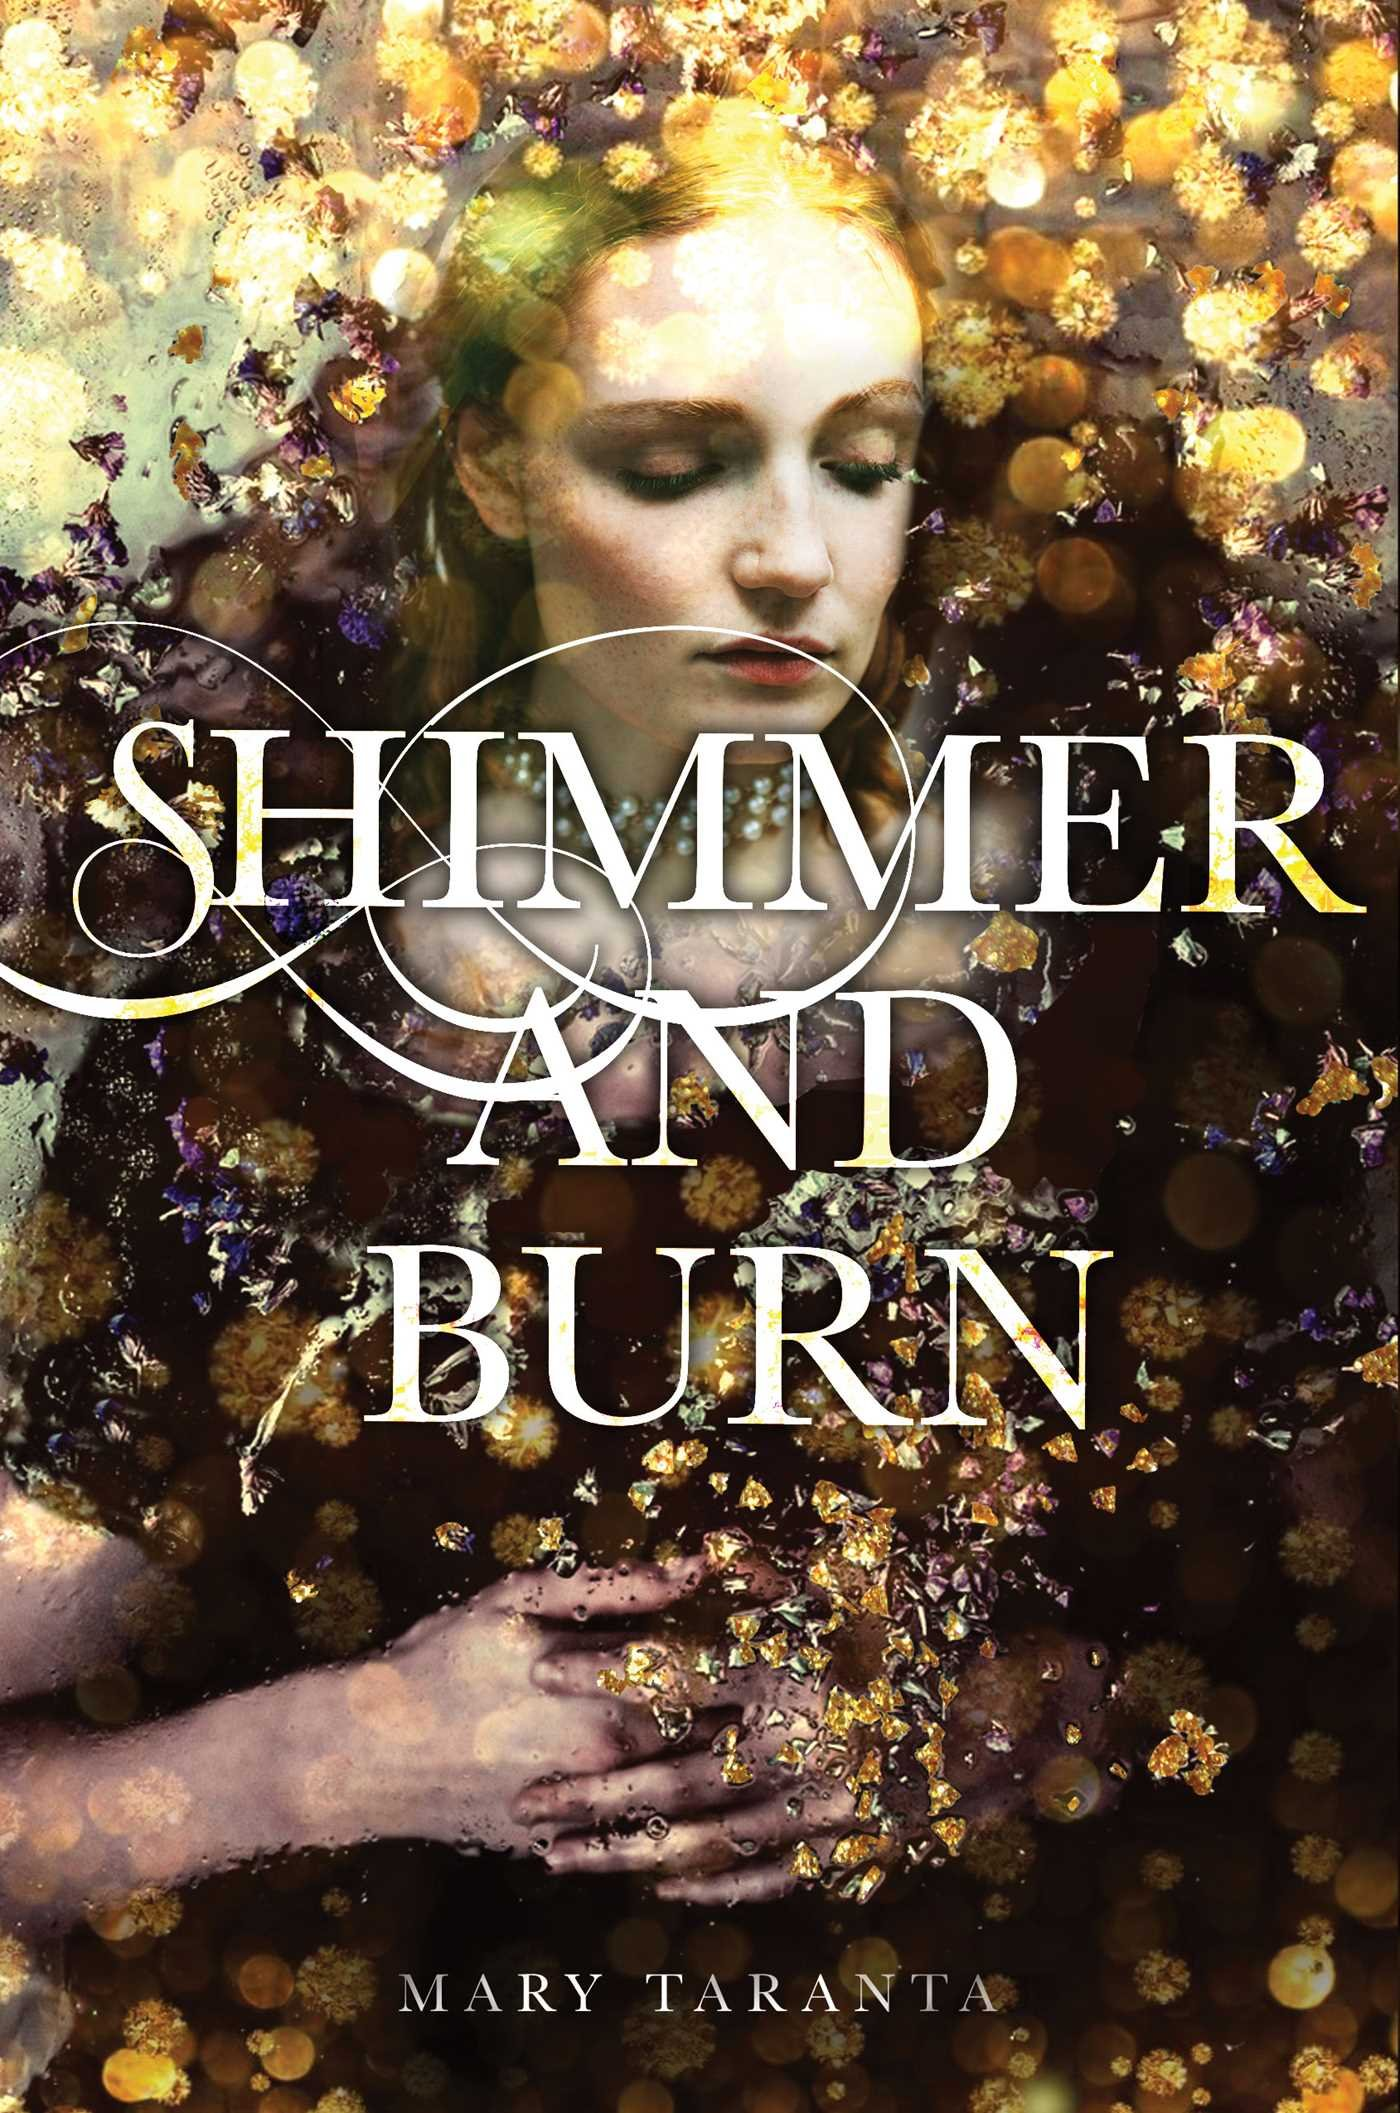 amazon com shimmer and burn 9781481471992 mary taranta books